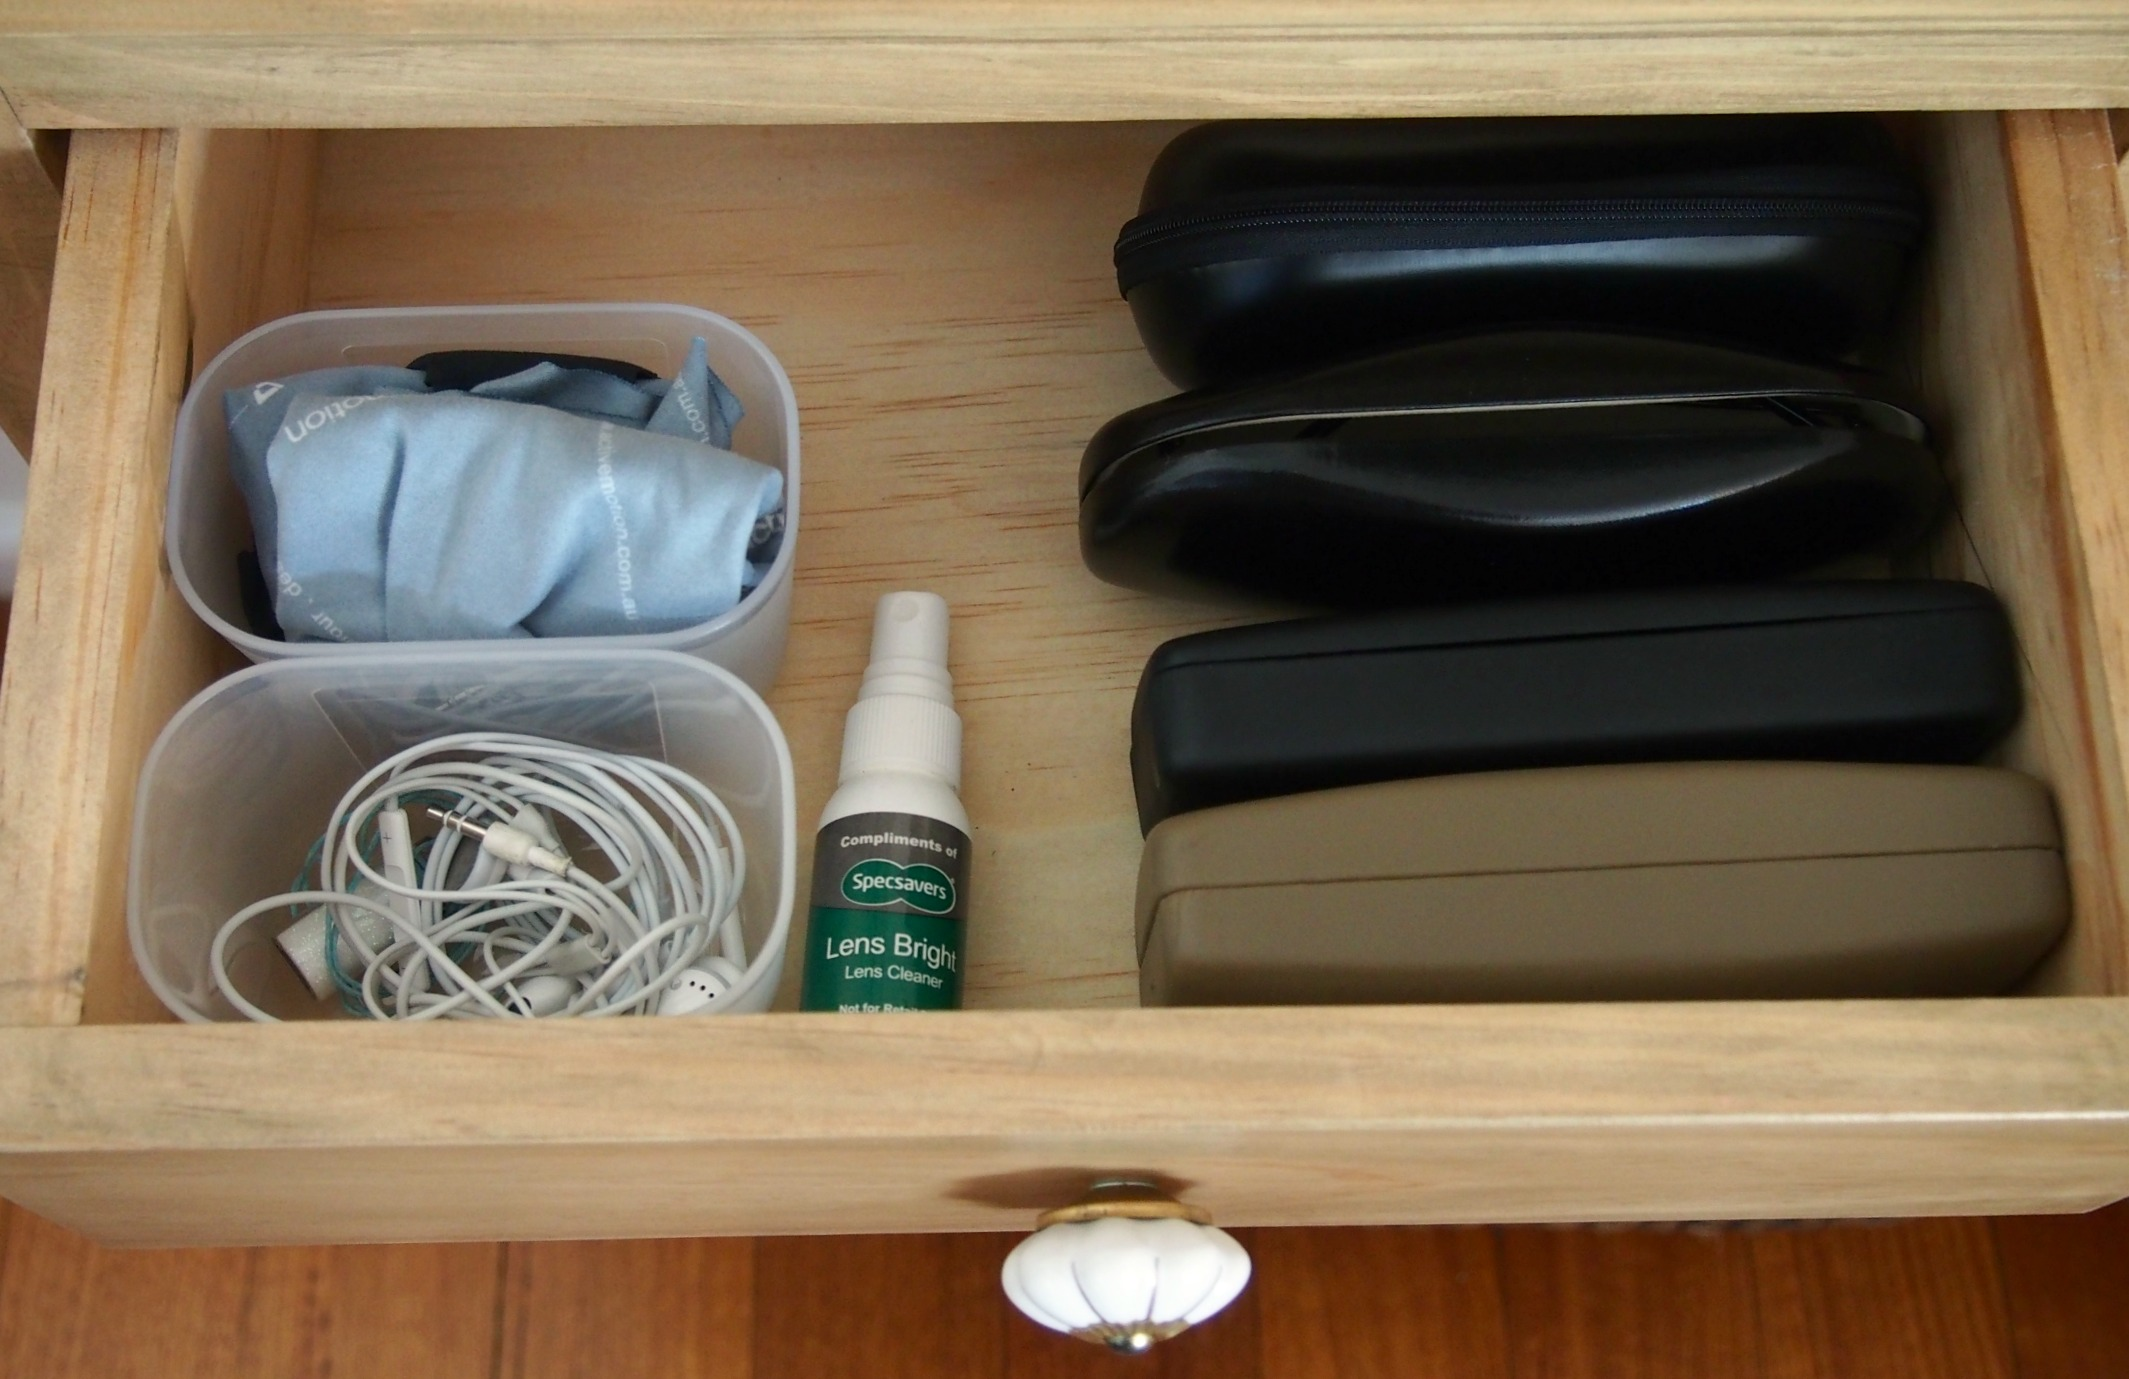 console drawer organisation